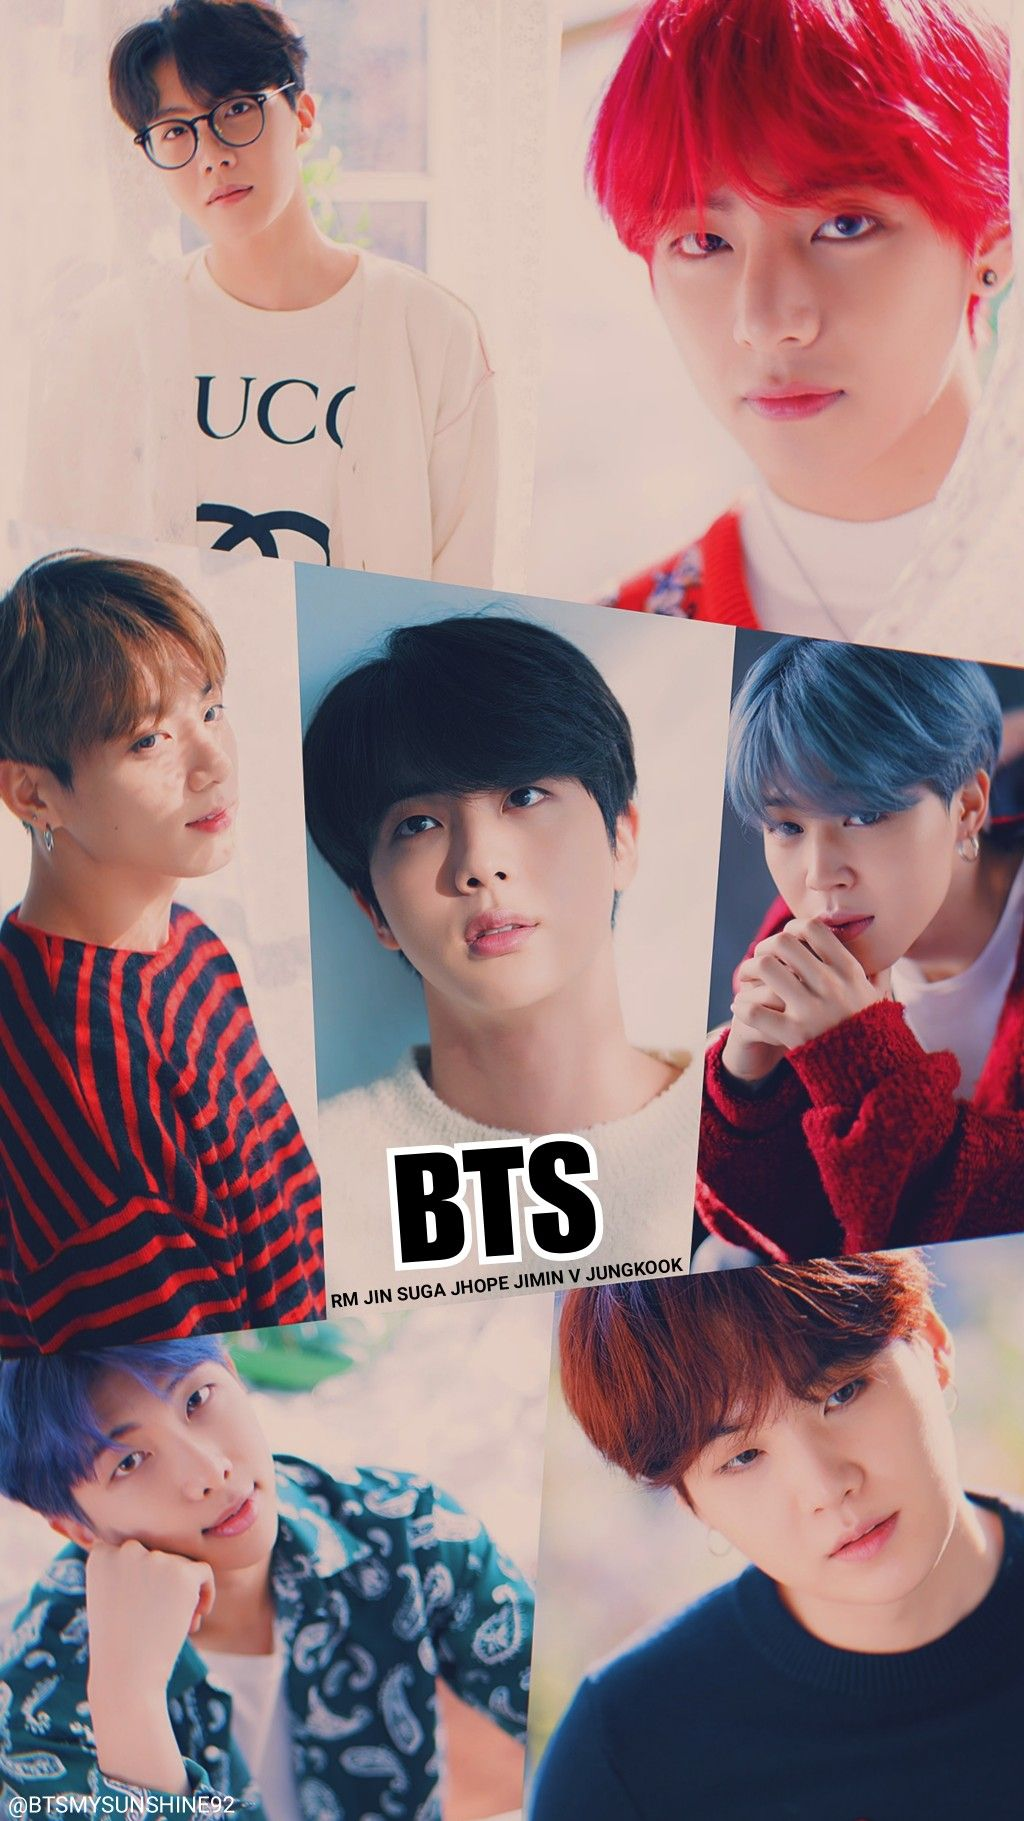 Bts Naver X Dispatch Wallpaper My Edit ホソク Bts かっこいい テヒョン